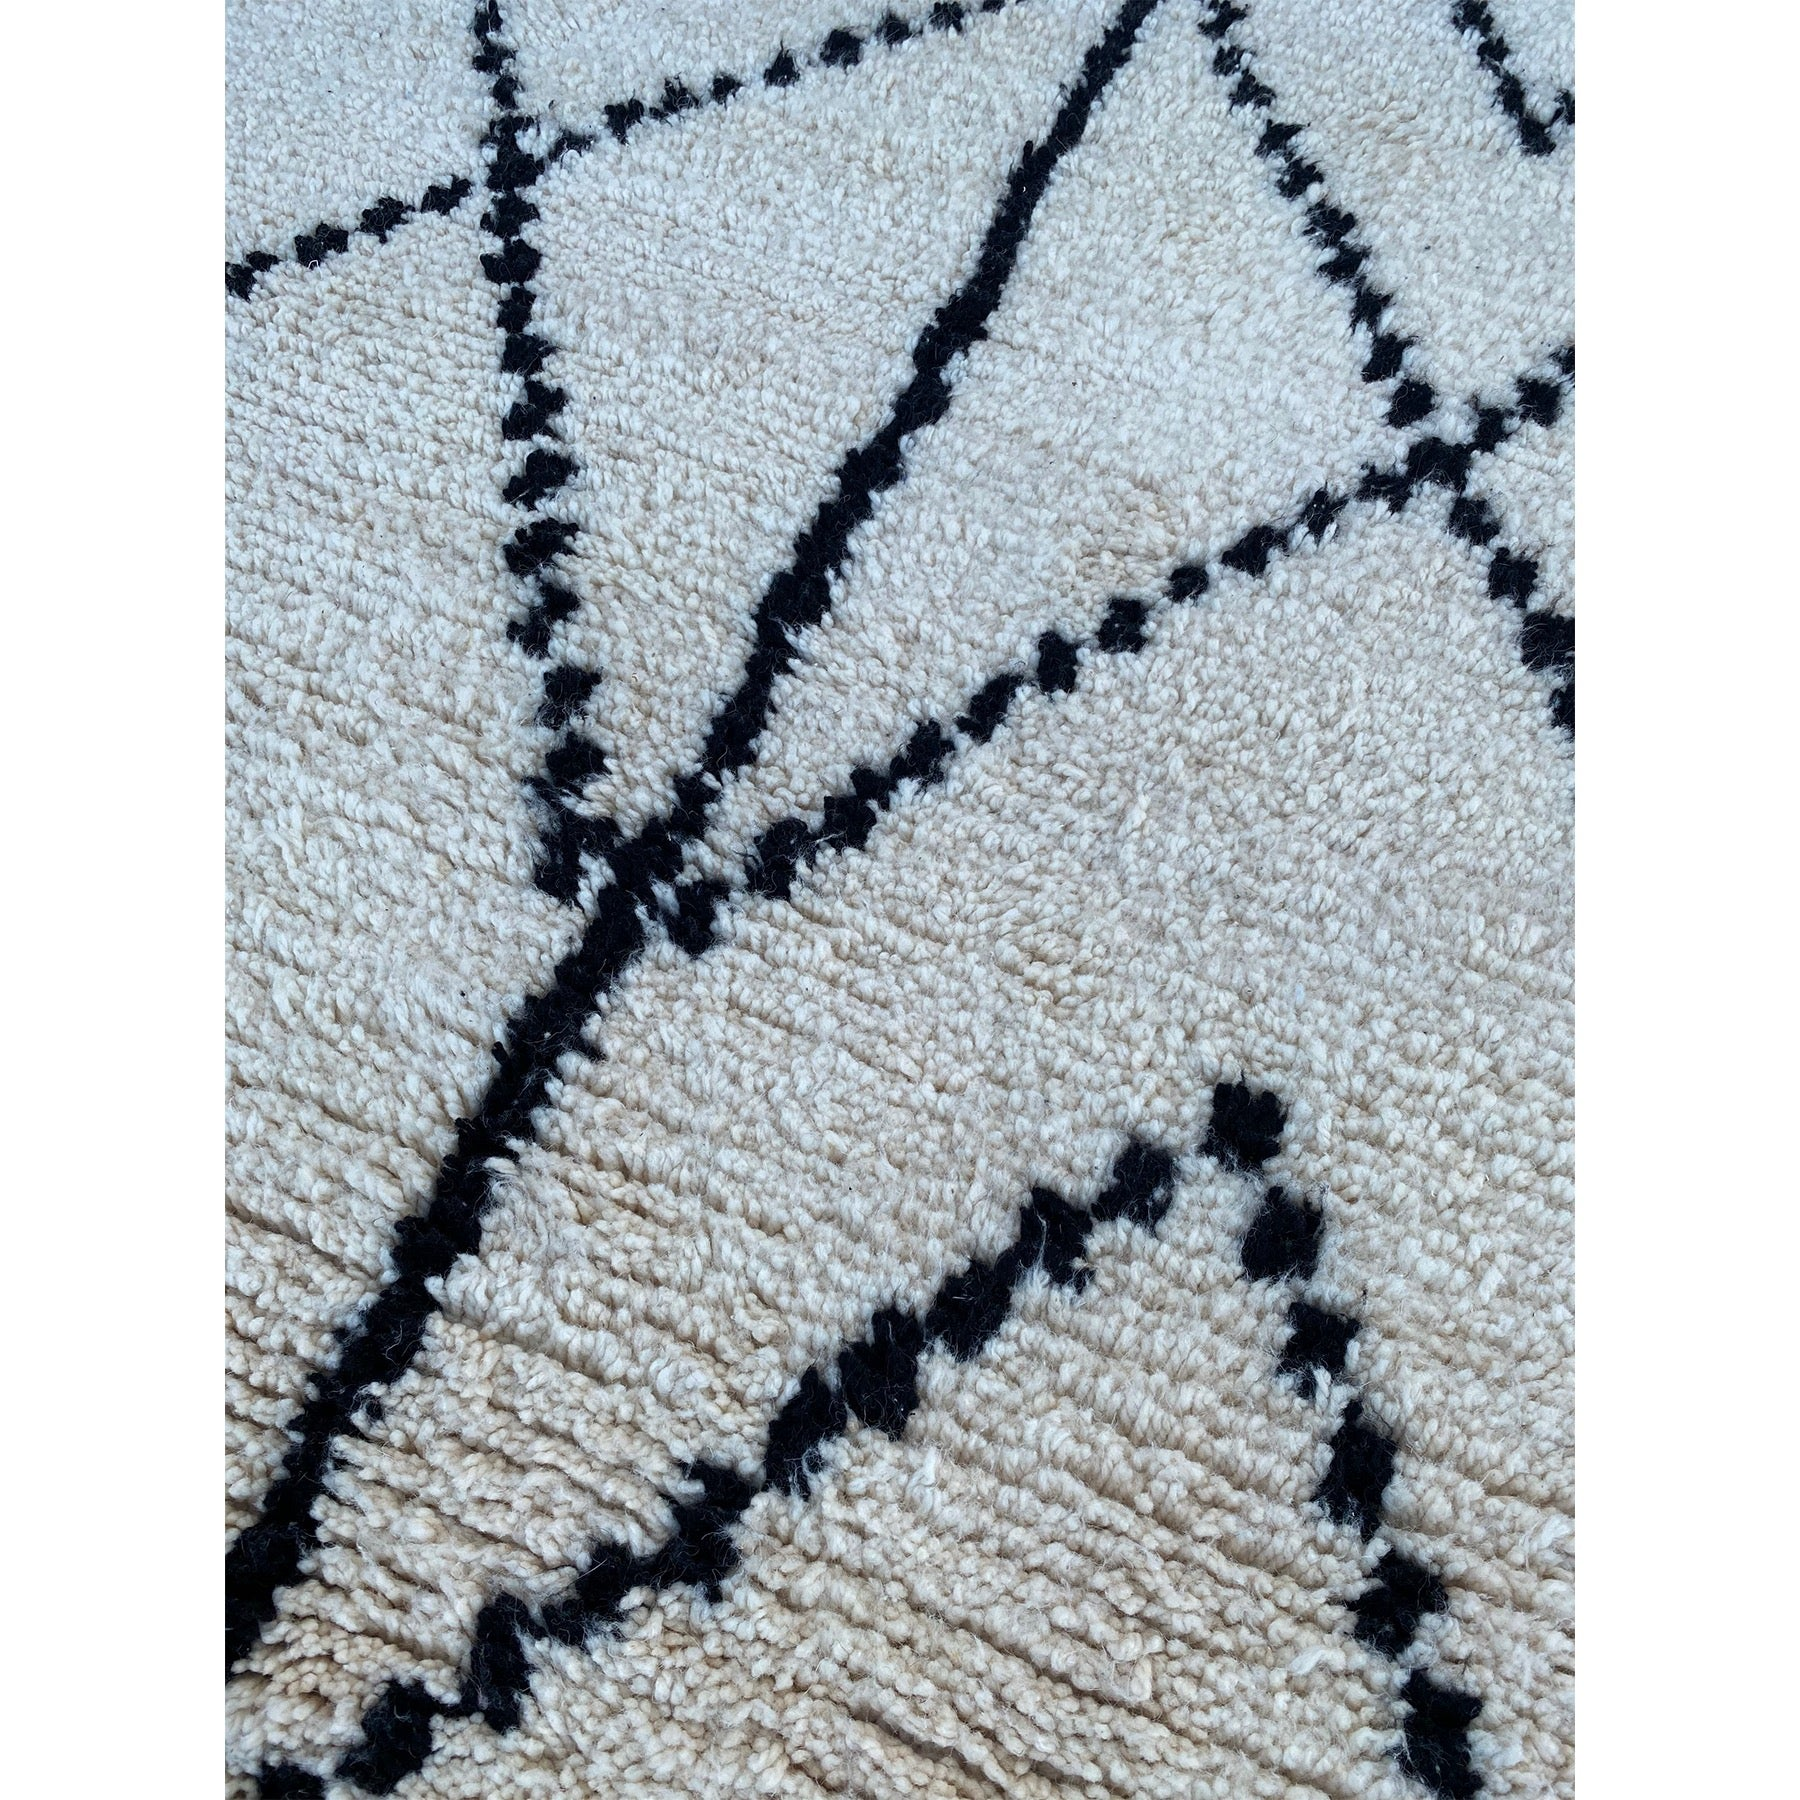 Black and white Moroccan entryway rug - Kantara | Moroccan Rugs